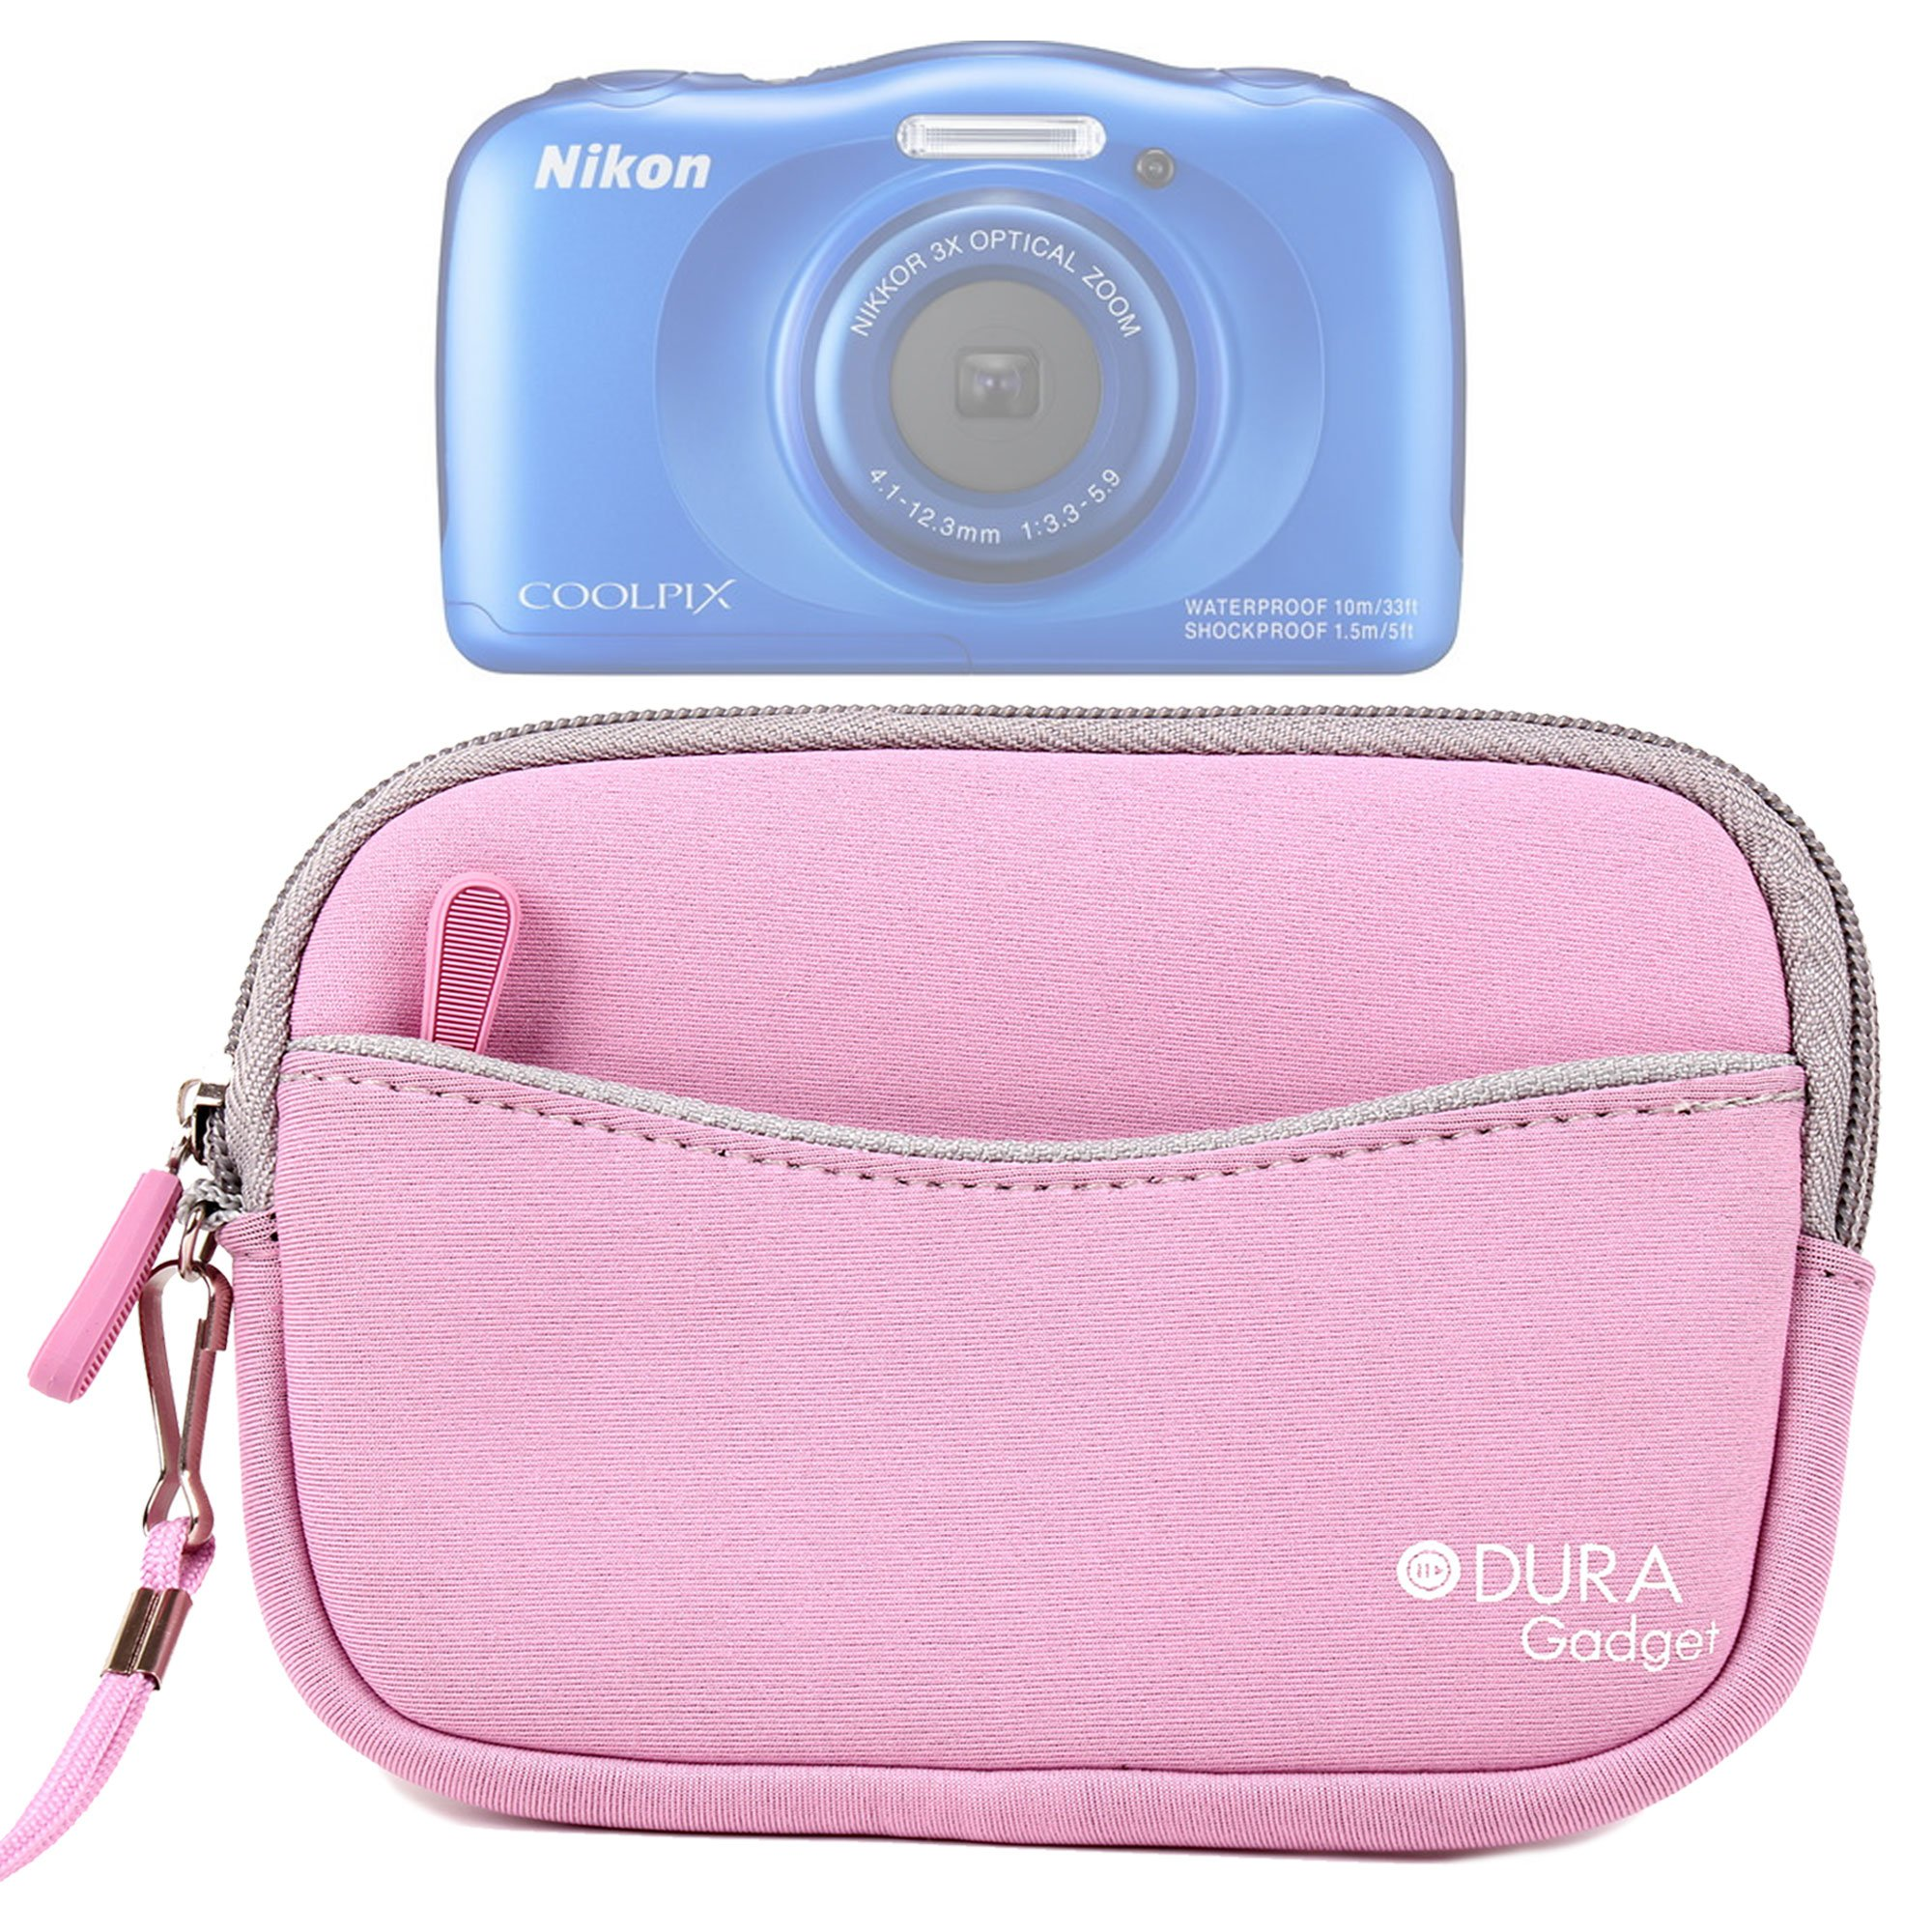 High Quality Water-Resistant Neoprene Case with Front Zip Compartment in Pink for NEW Nikon Coolpix W300 / Nikon Coolpix A100 / Nikon CoolPix AW130 and CoolPix S33 - by DURAGADGET